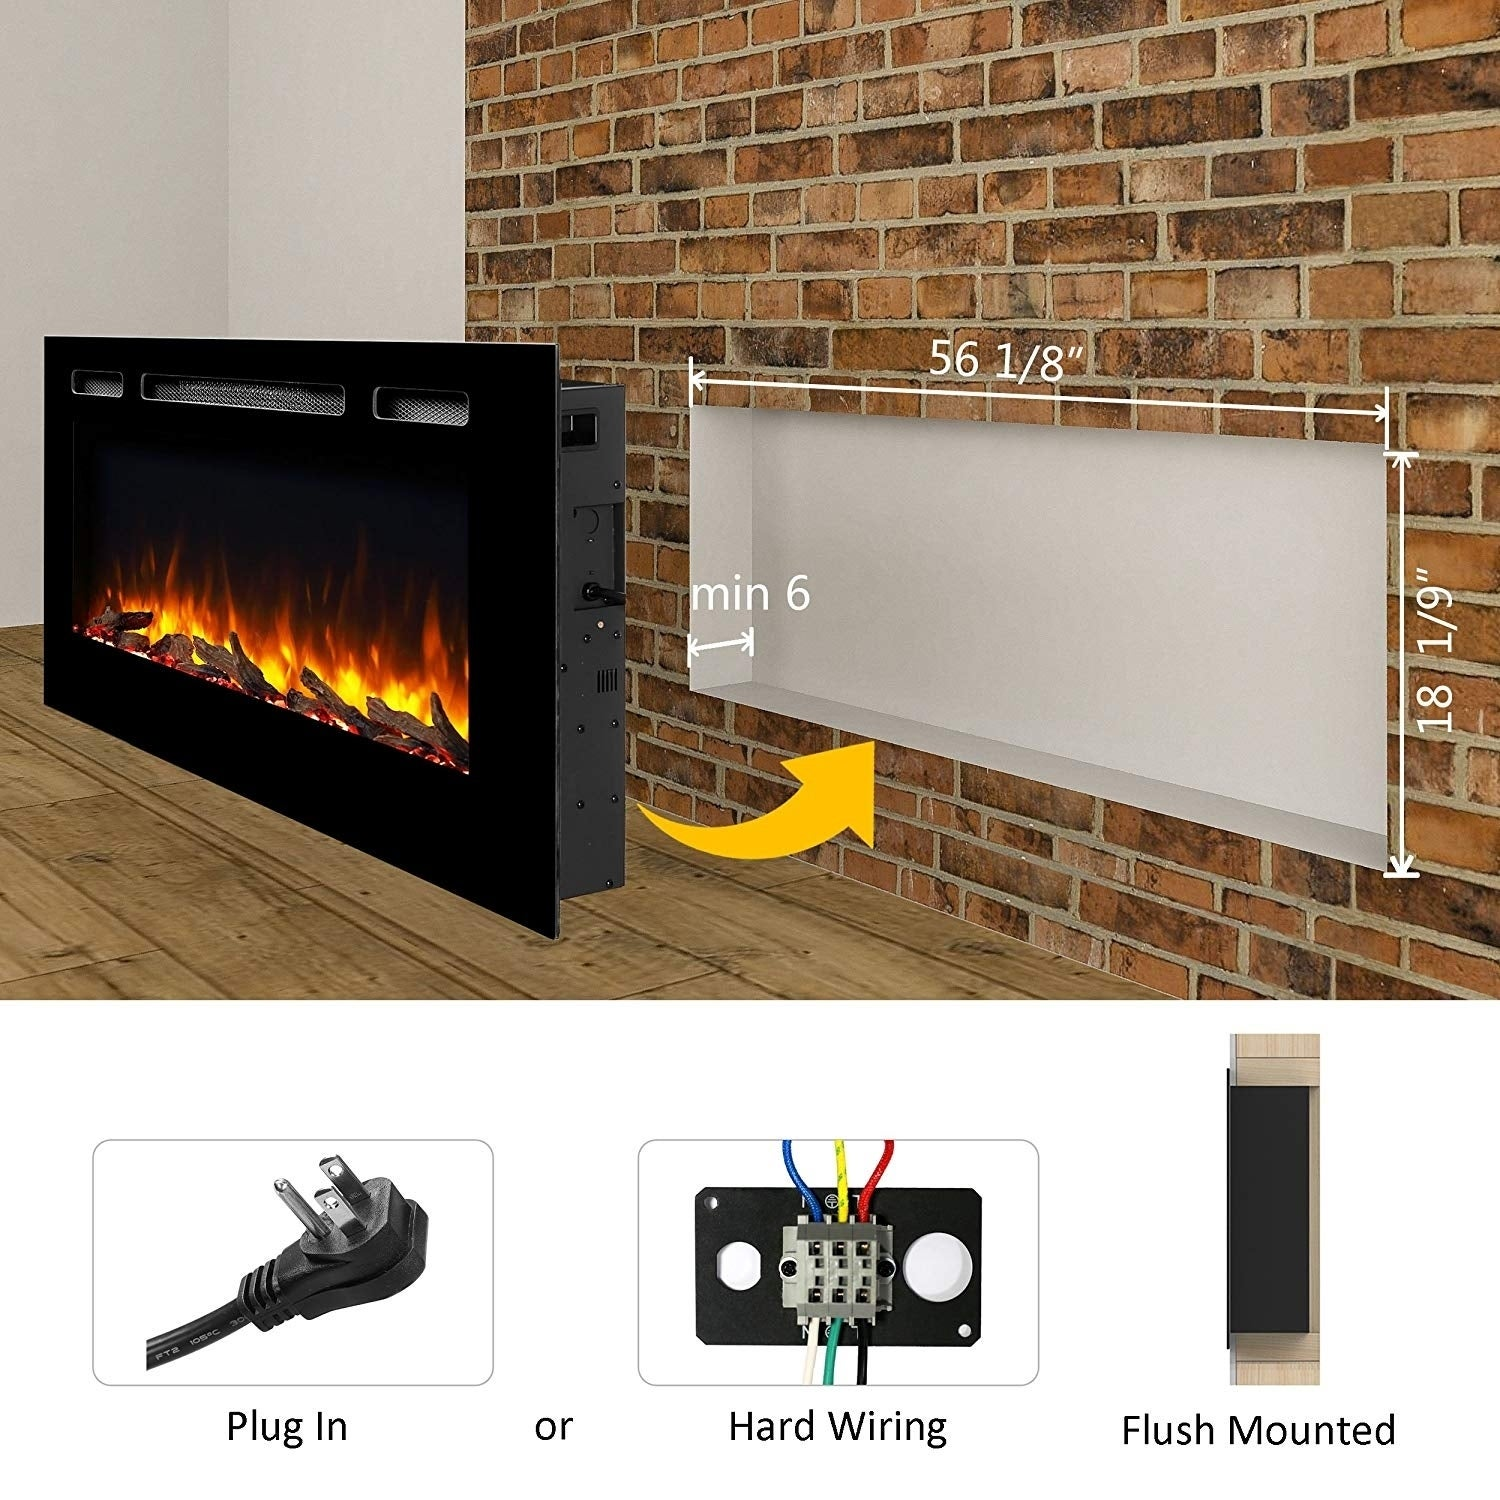 60 Alice In Wall Recessed Electric Fireplace 1500W Black 4dfc110d 830d 4830 887d f523c4949d03